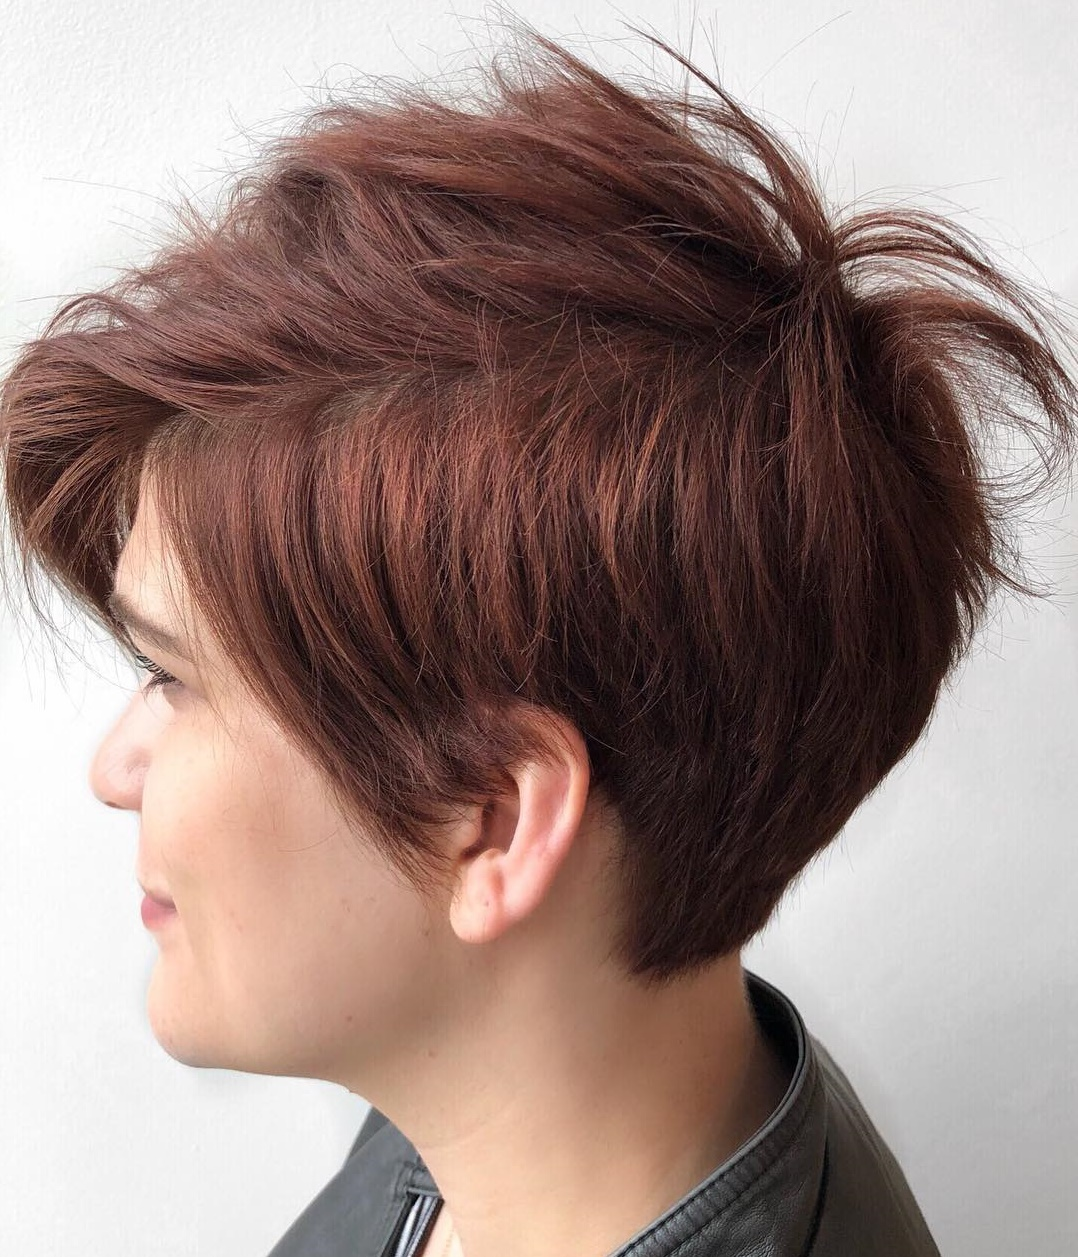 Mahogany Brown Tapered Pixie